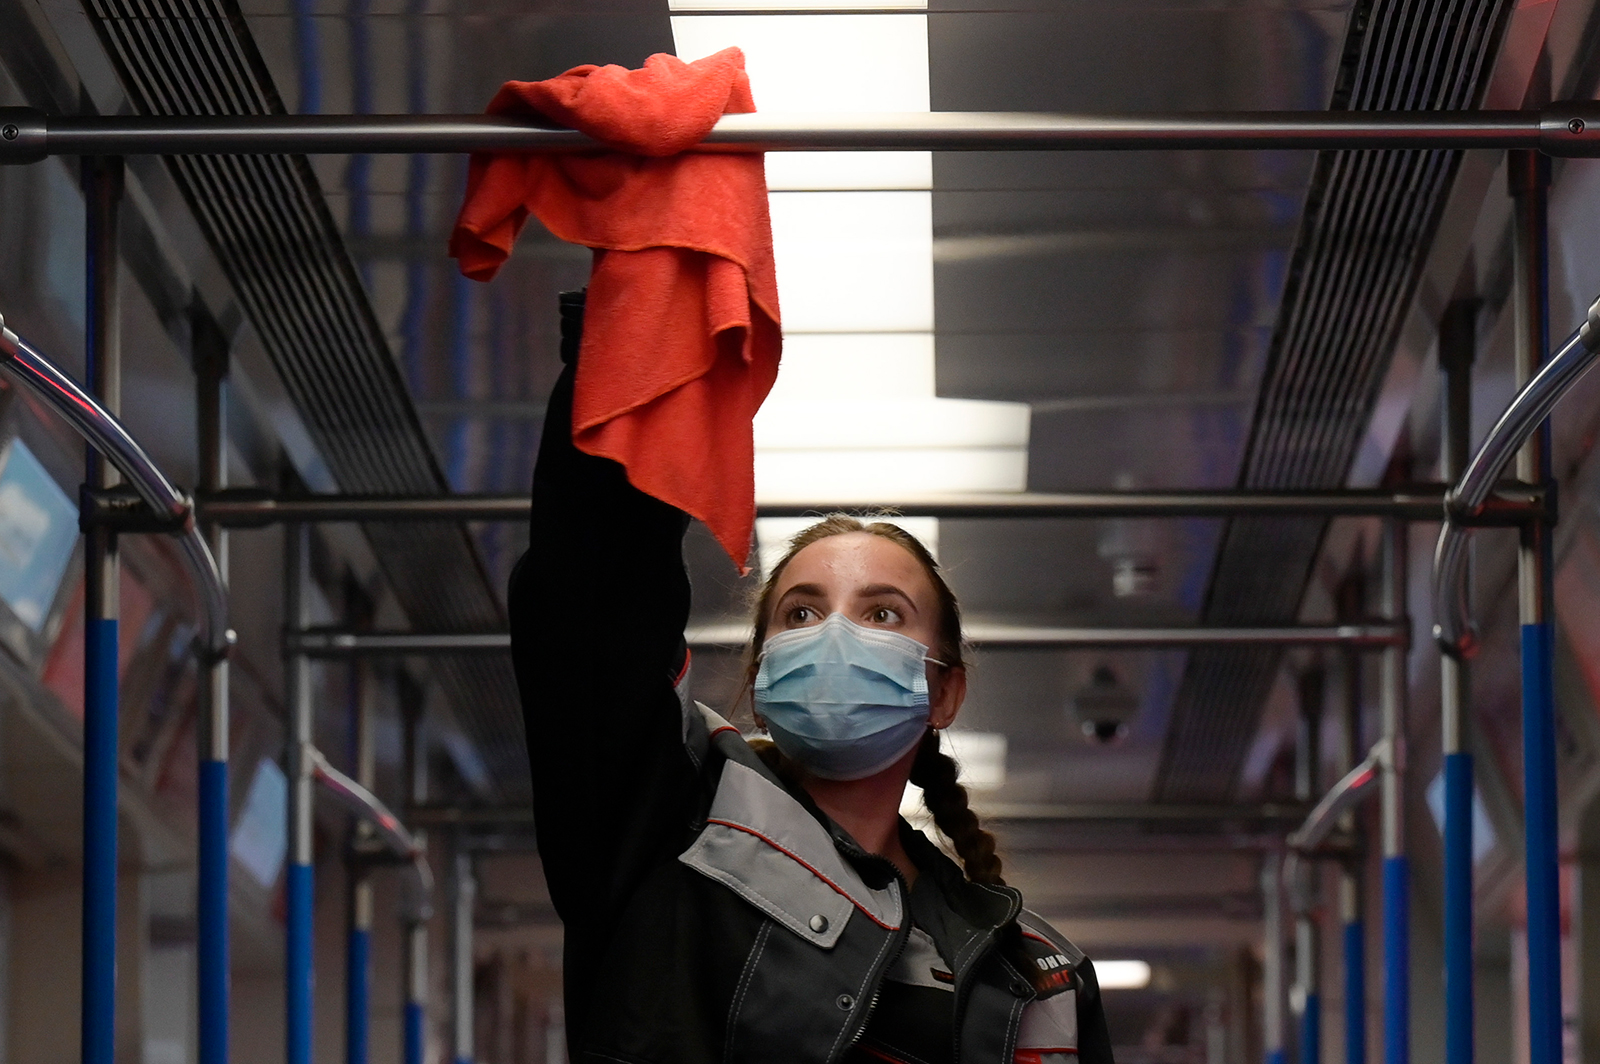 An employee disinfects a metro train to prevent coronavirus spread, at a Moscow depot on October 22.